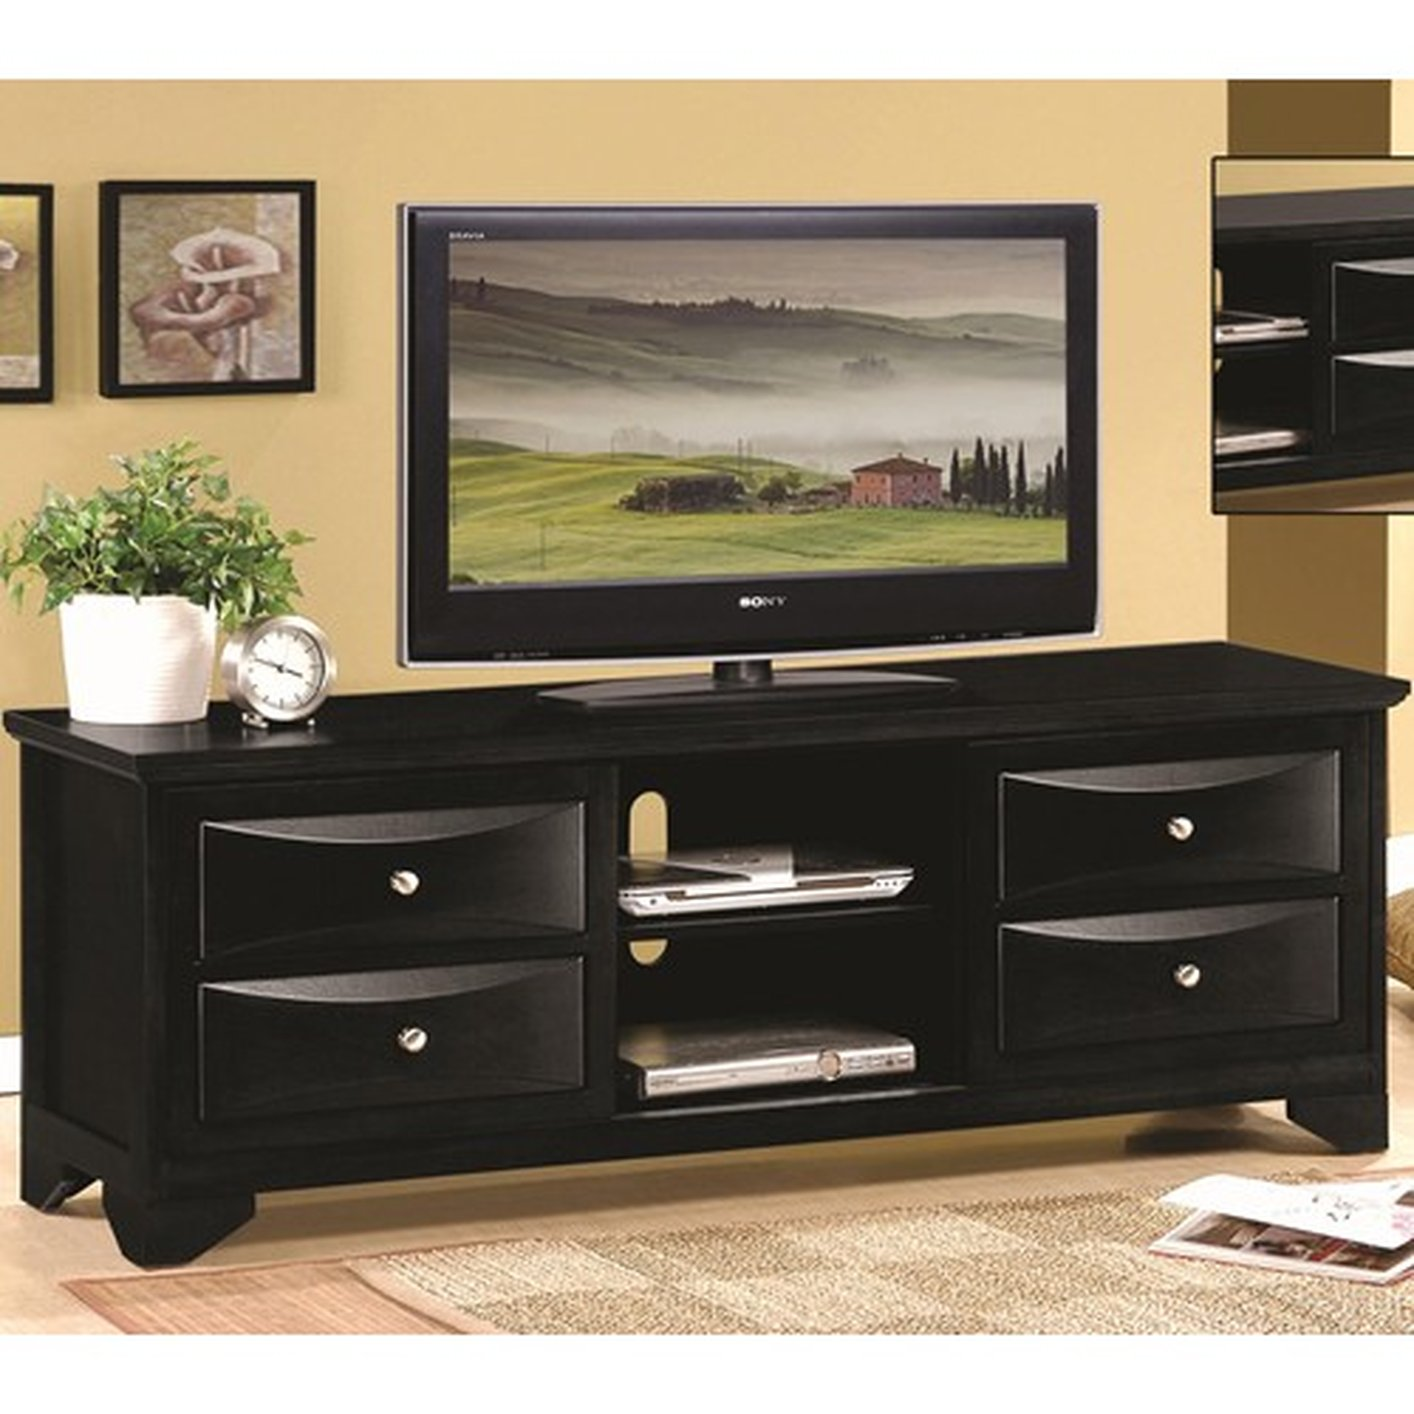 for tv bedroom kennecott elegant land dresser home stand combo